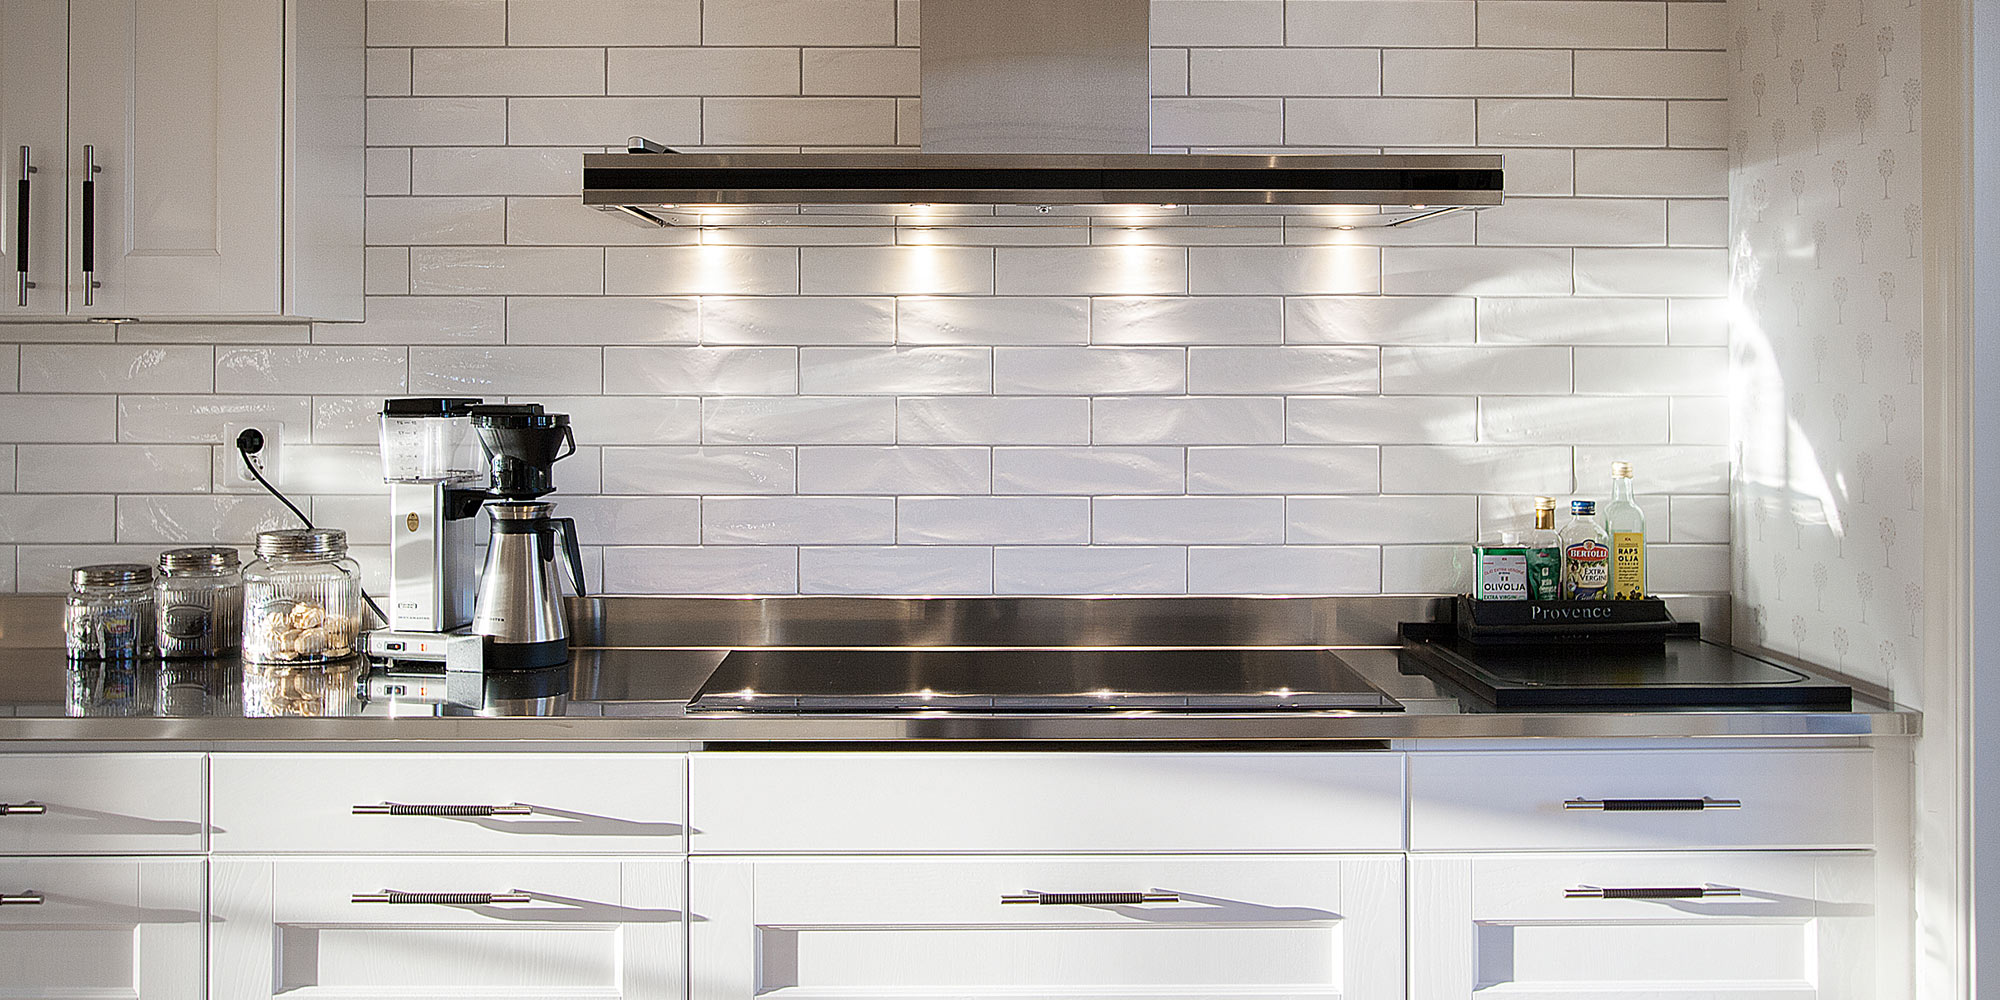 New yorker by settecento kitchen backsplash ideas for Modern zion kitchen